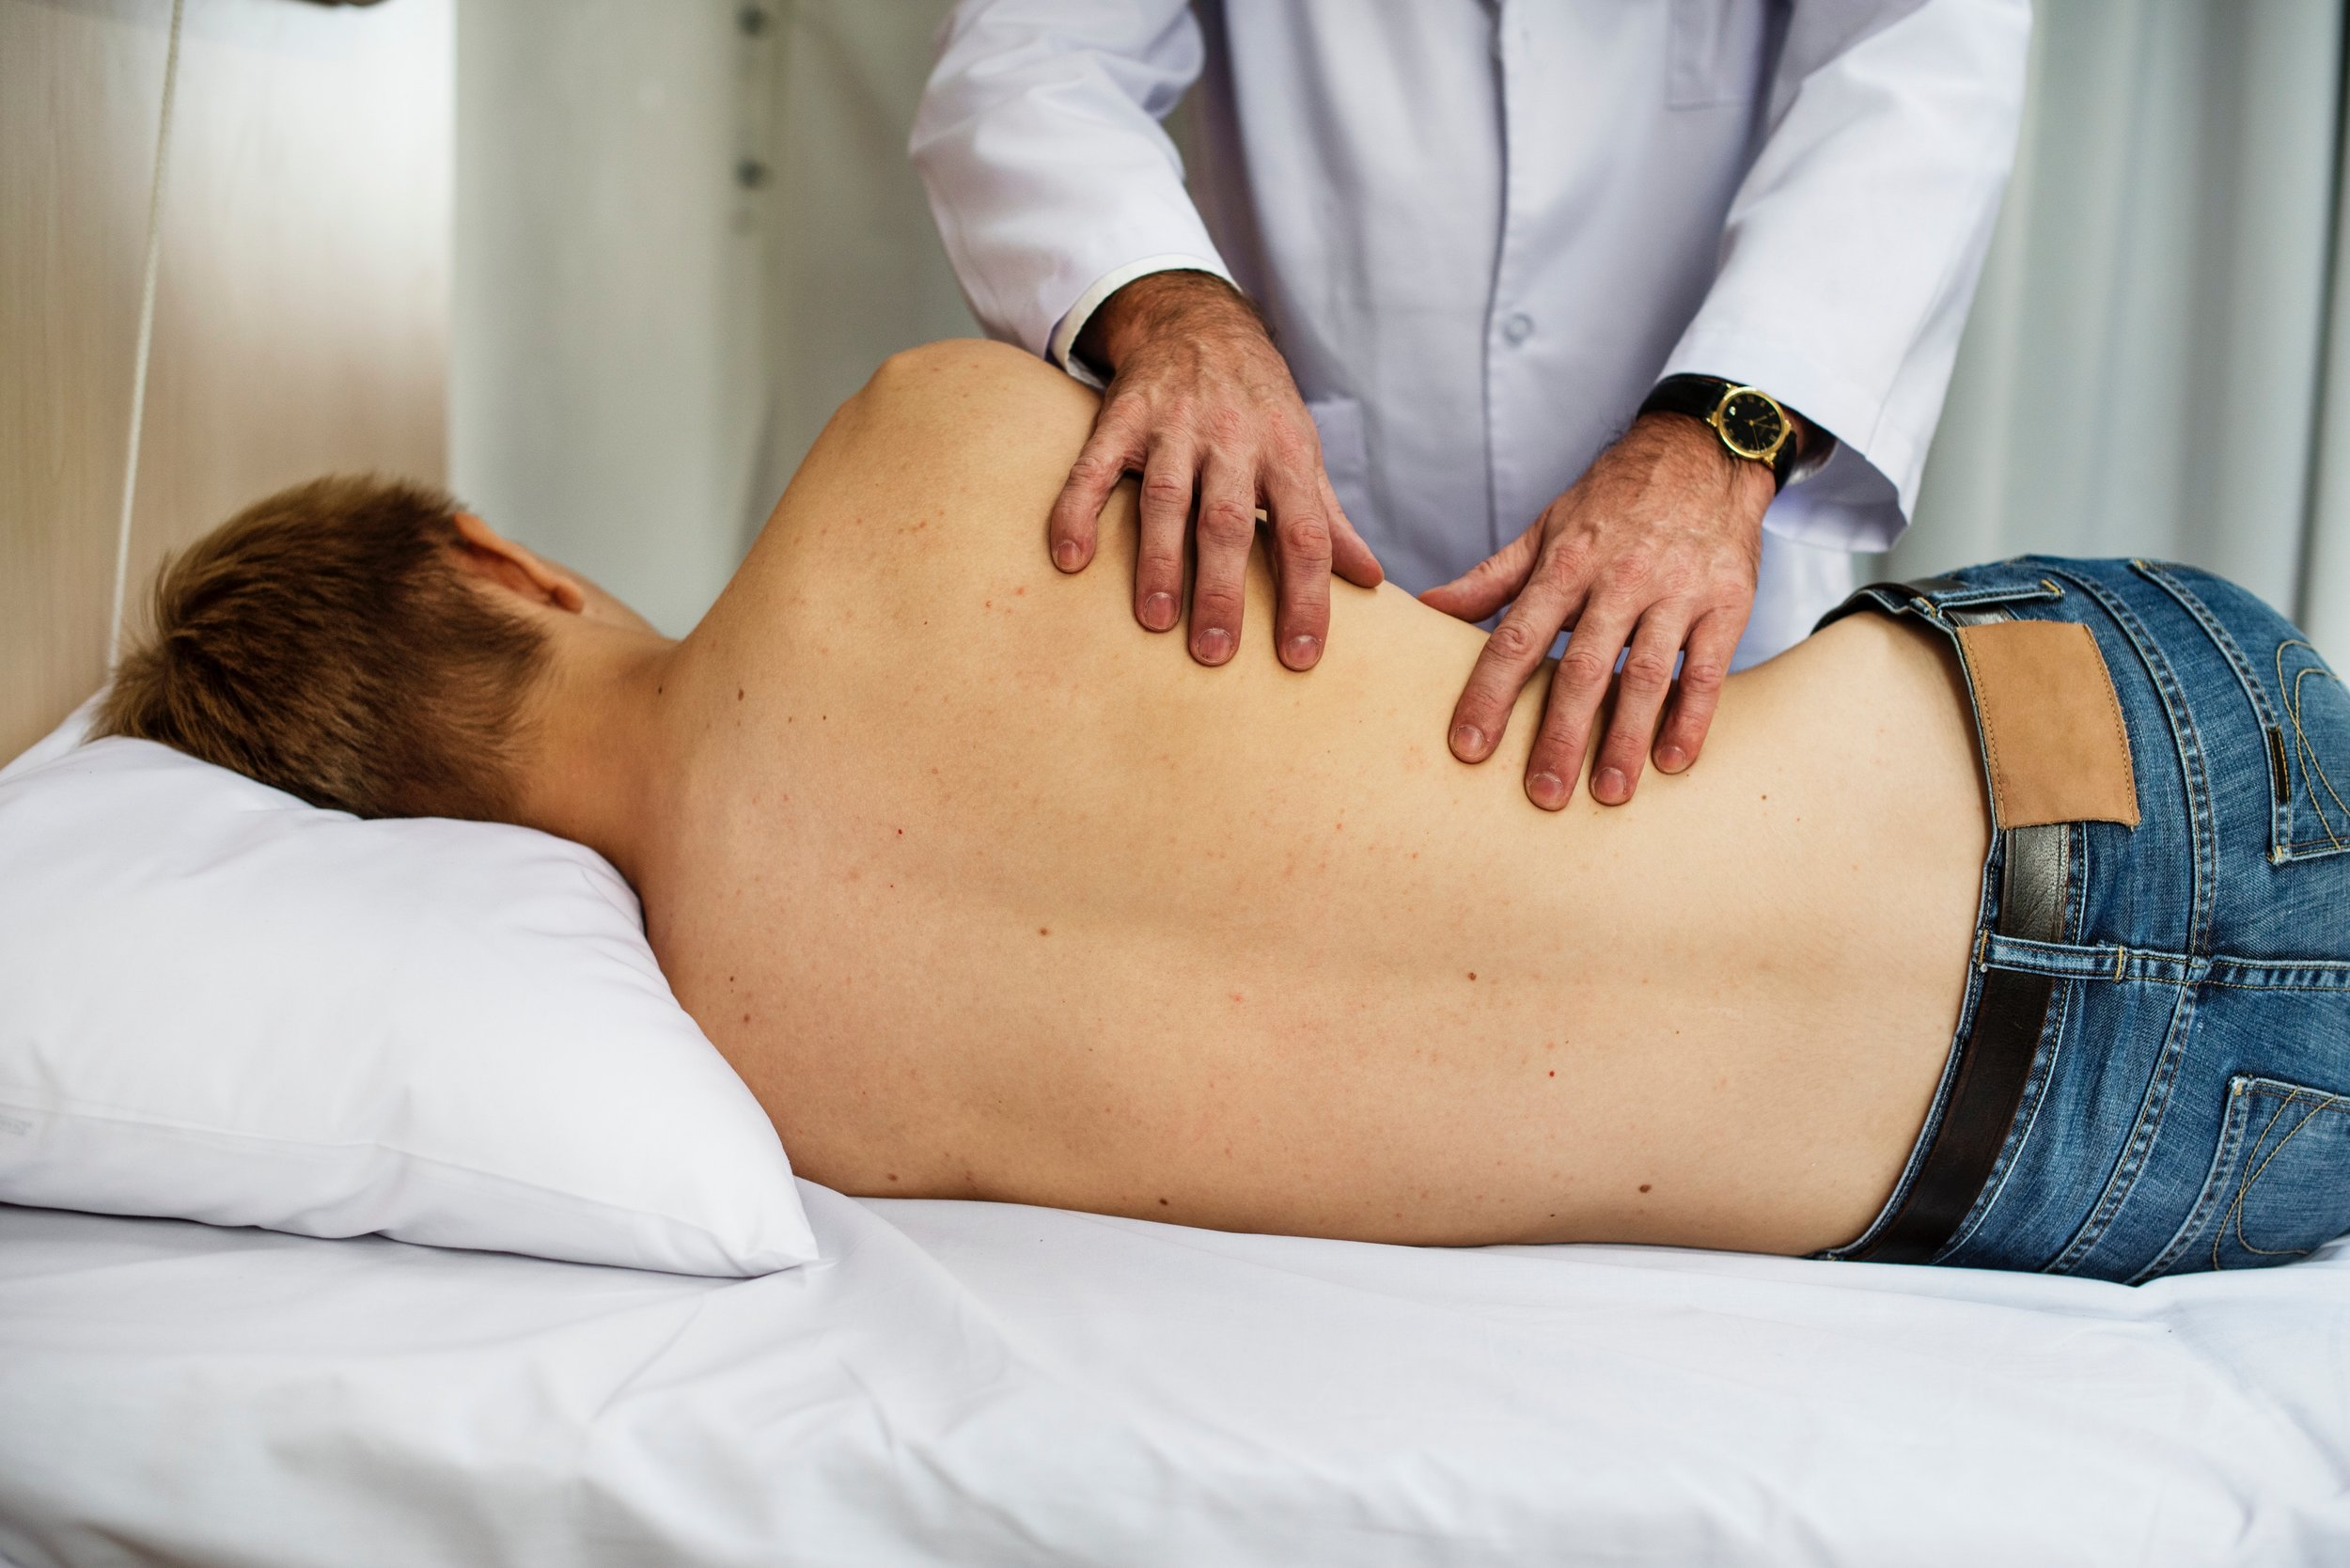 bed-clinic-doctor-1321728.jpg